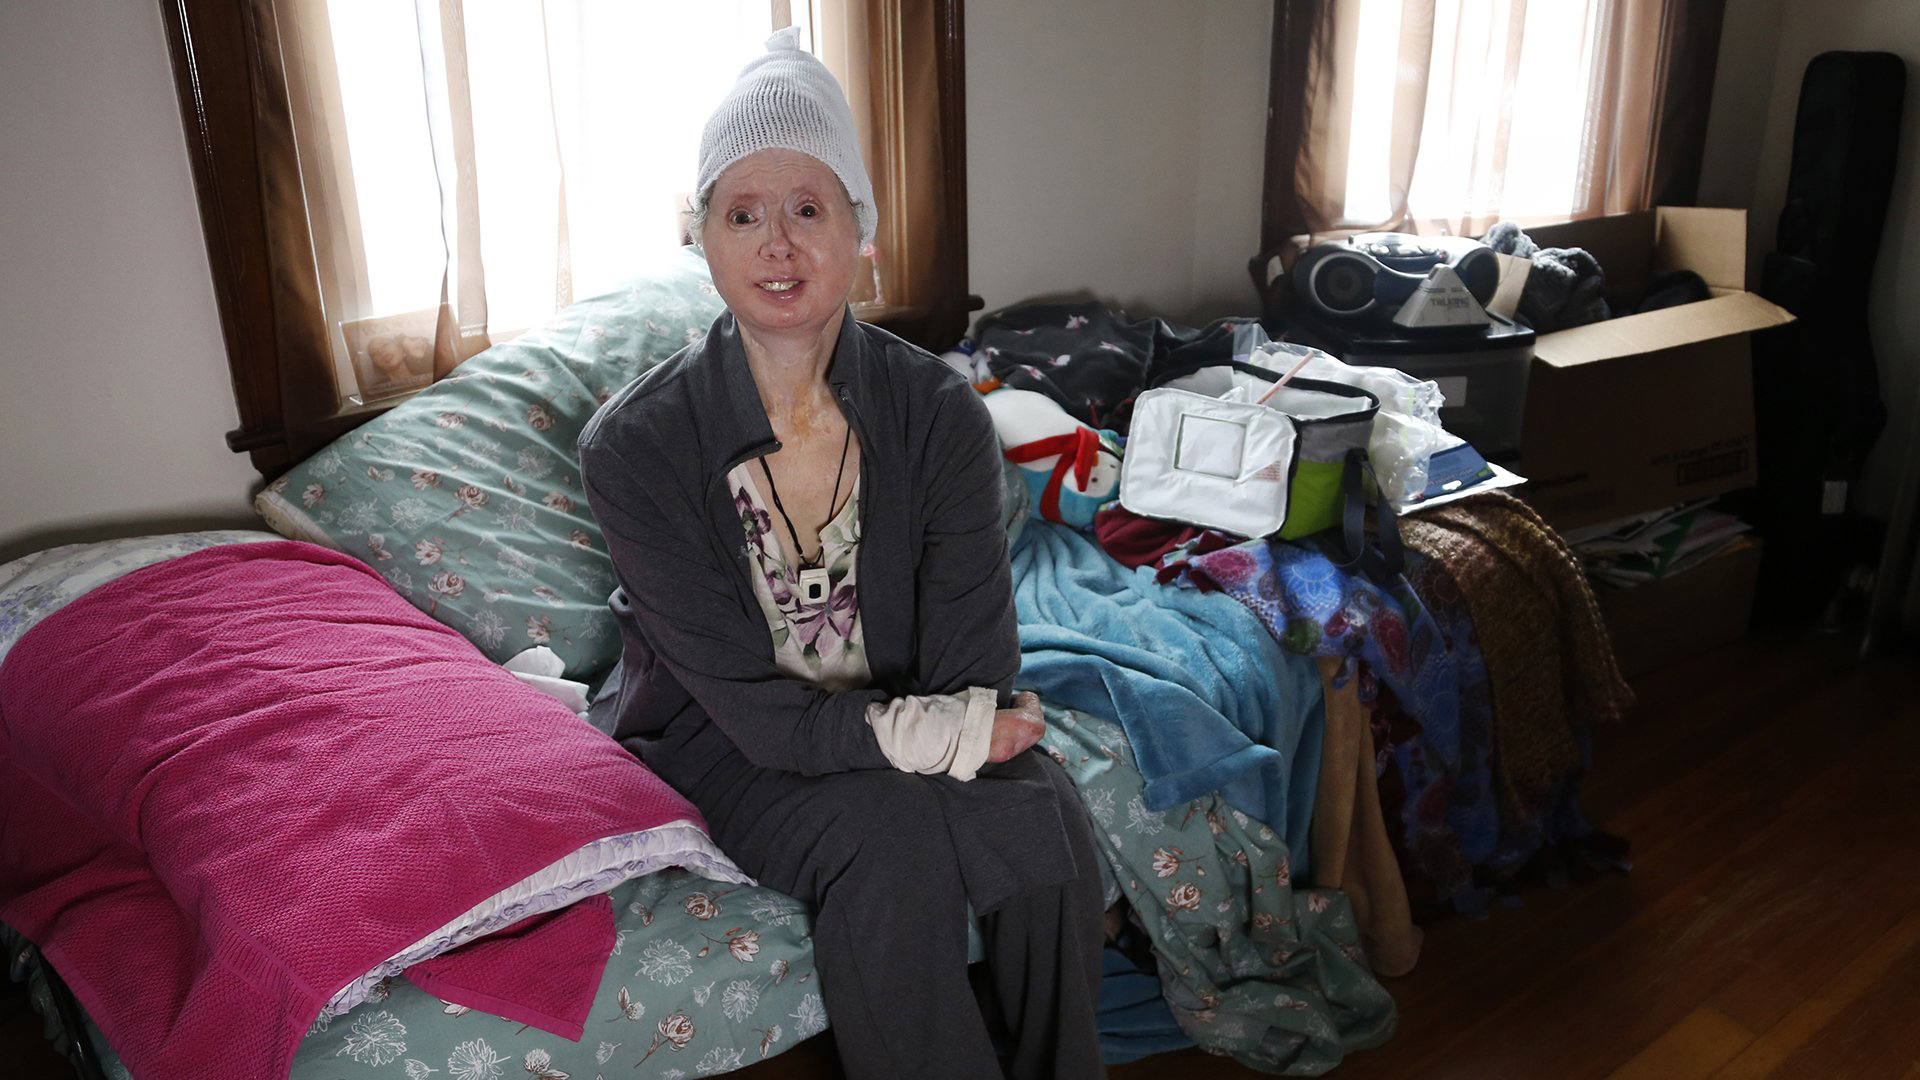 Chimp attack survivor Charla Nash hopes to give back by helping